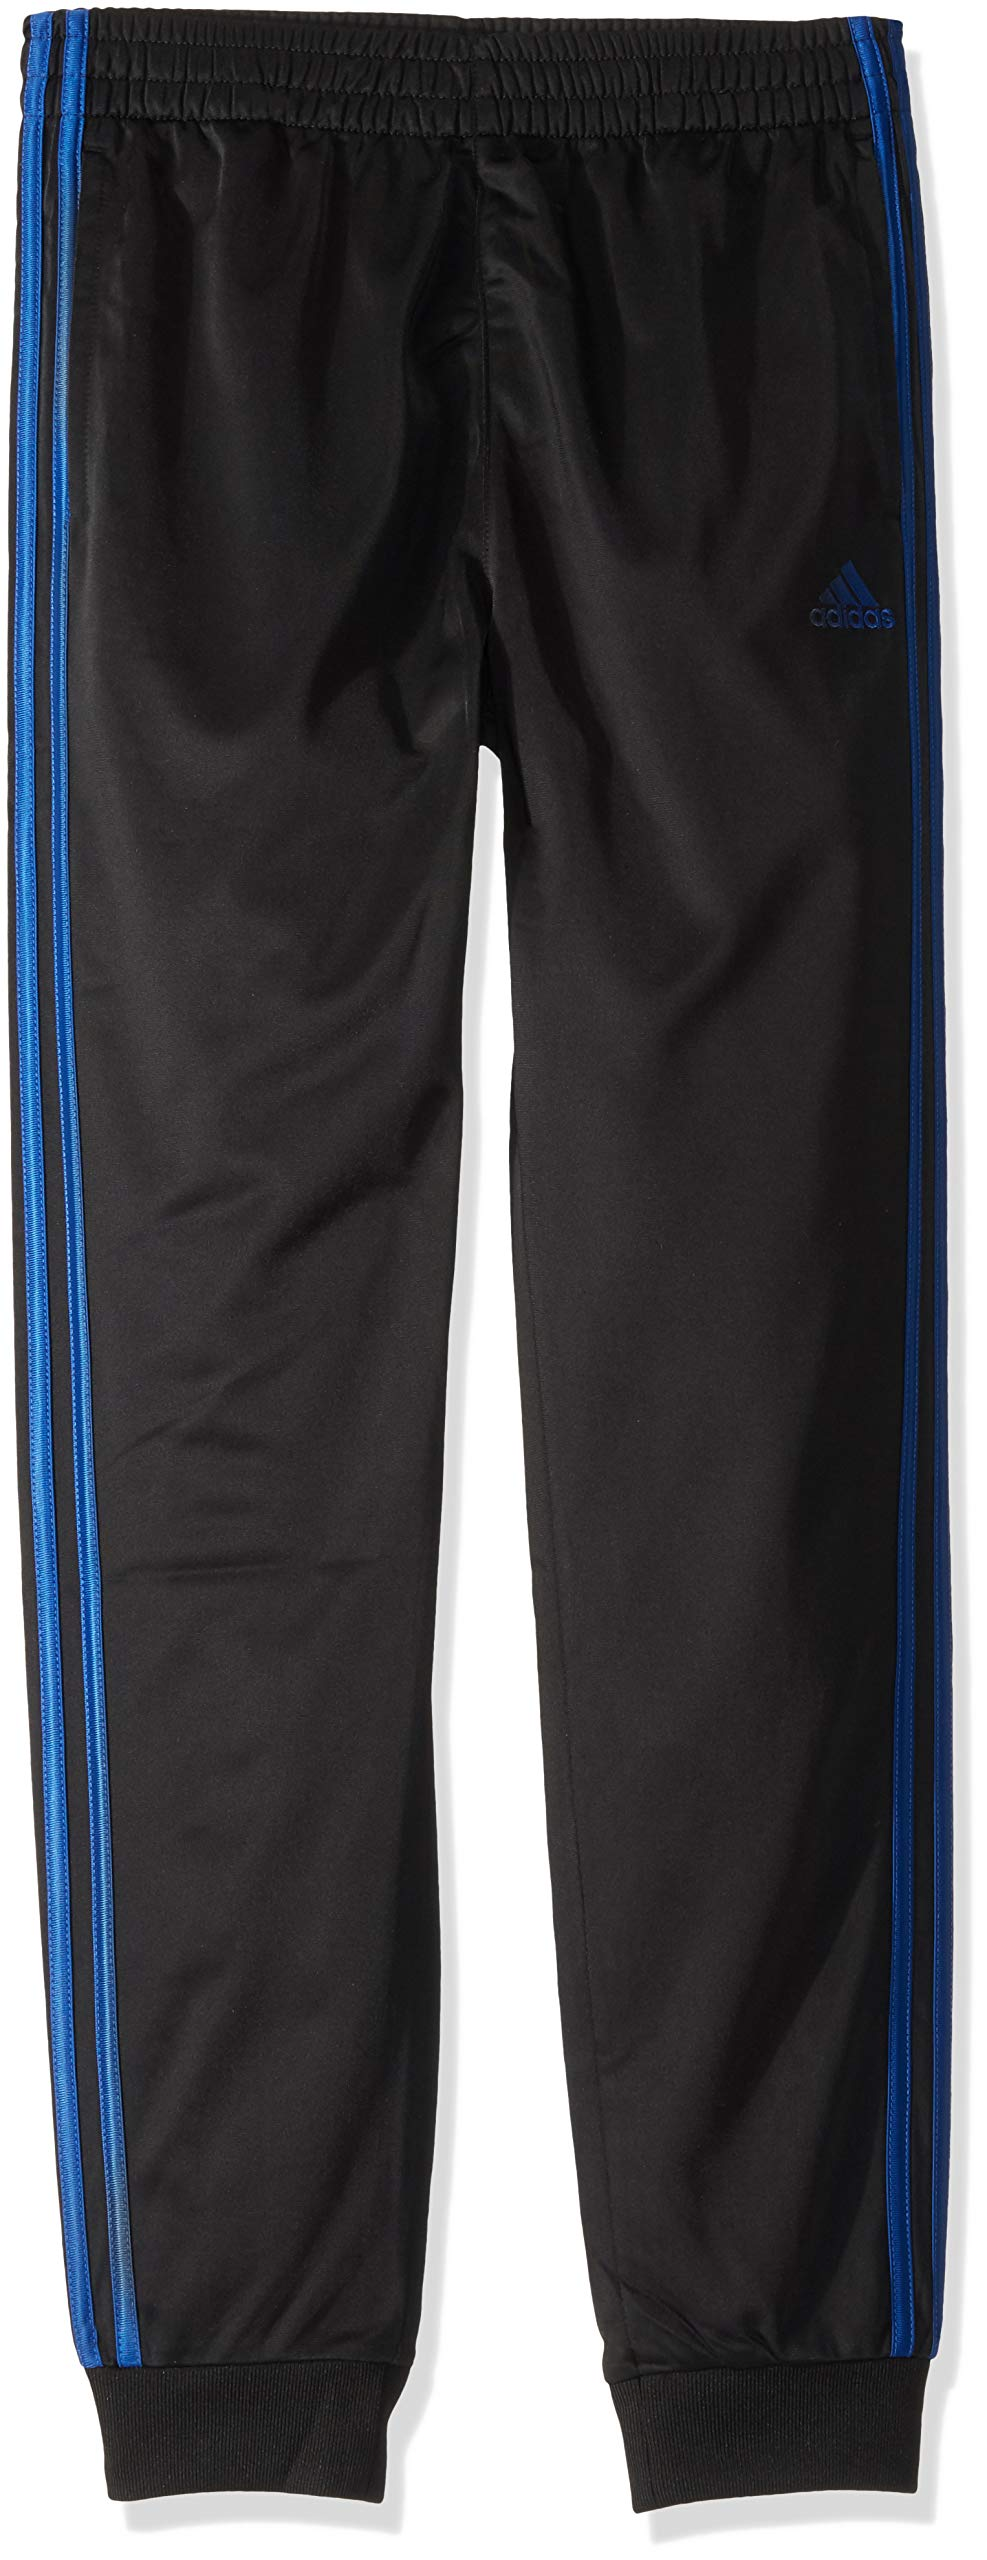 adidas Kids Boy's Impact Tricot Jogger (Big Kids) Black/Blue Small by adidas